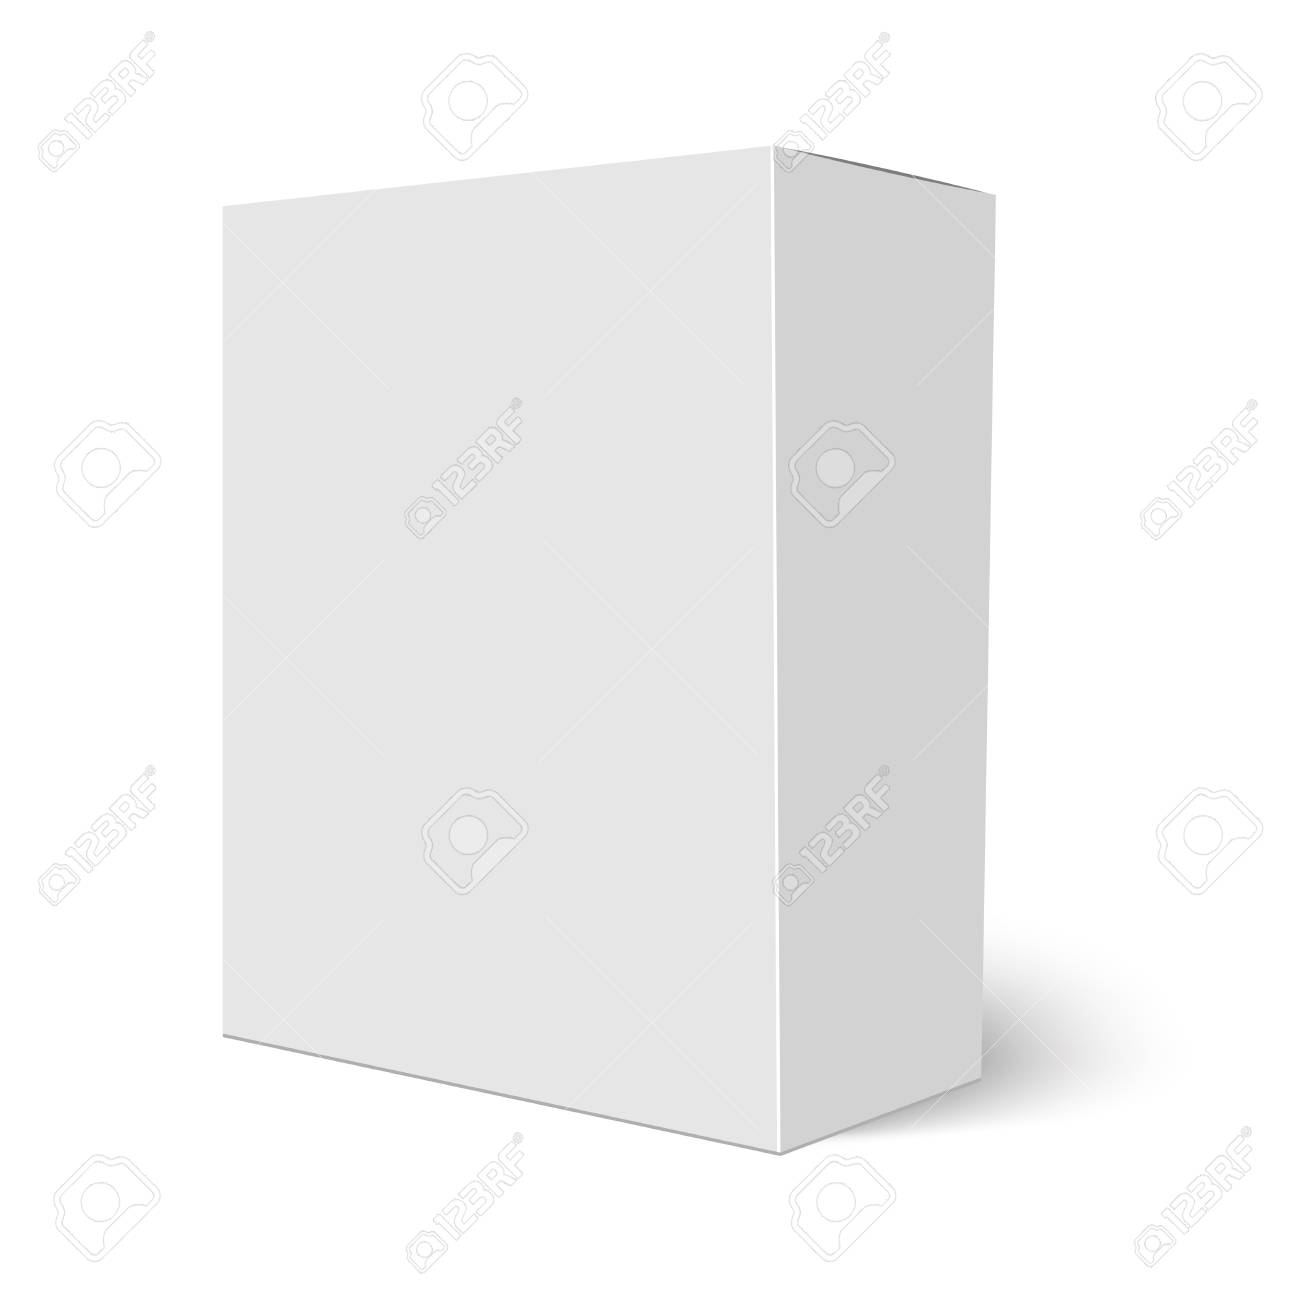 Blank vertical paper box template standing on white background Vector illustration - 90373093